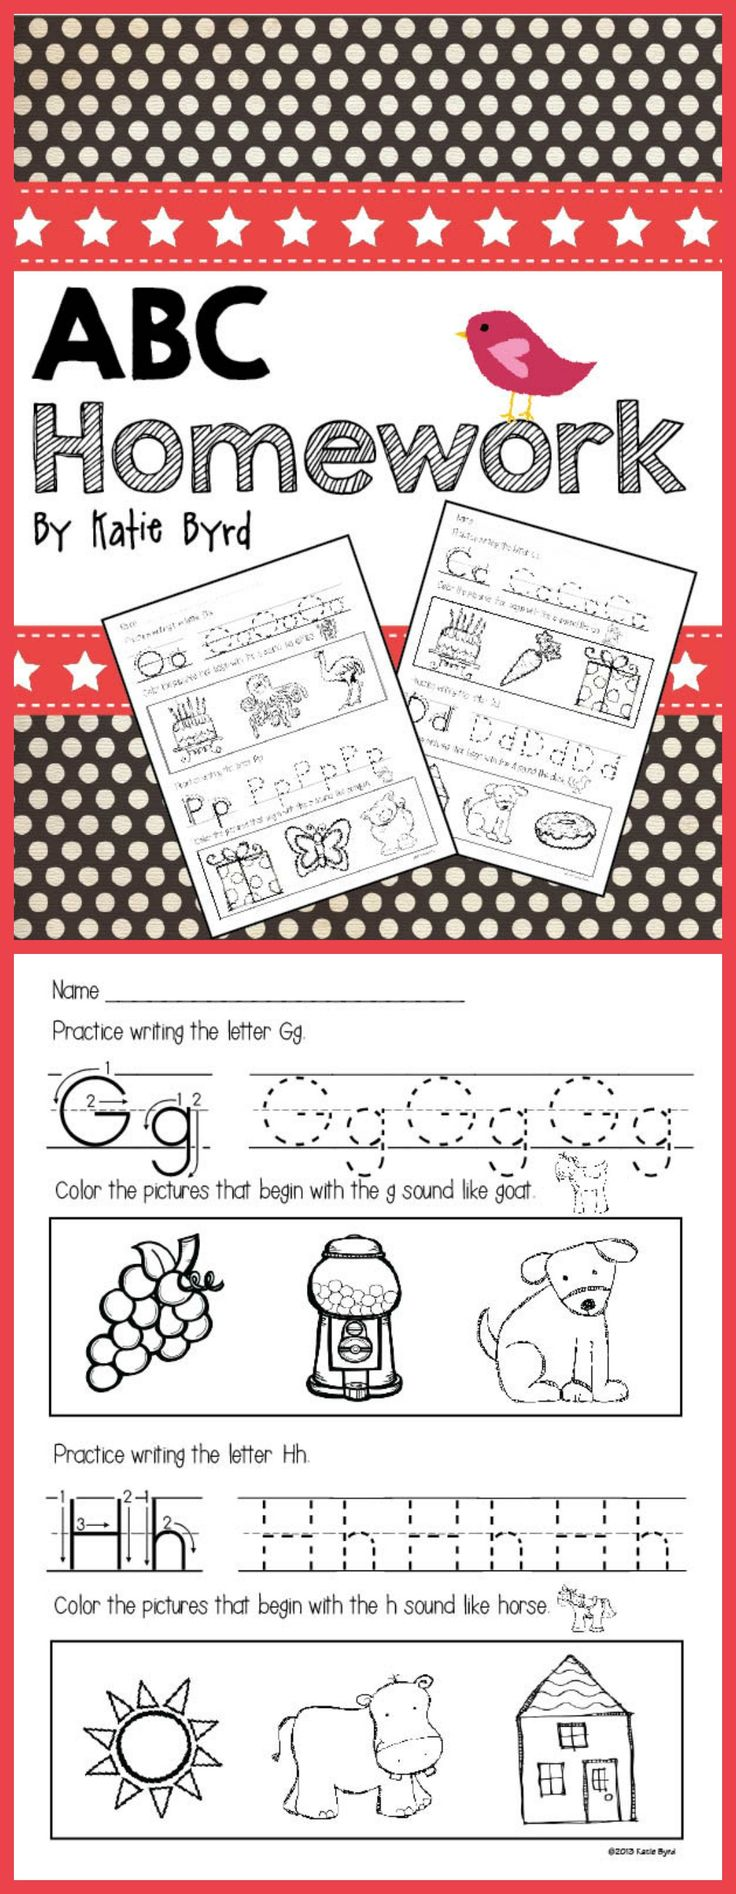 43 best Kindergarten Homework Ideas images on Pinterest | Guided ...